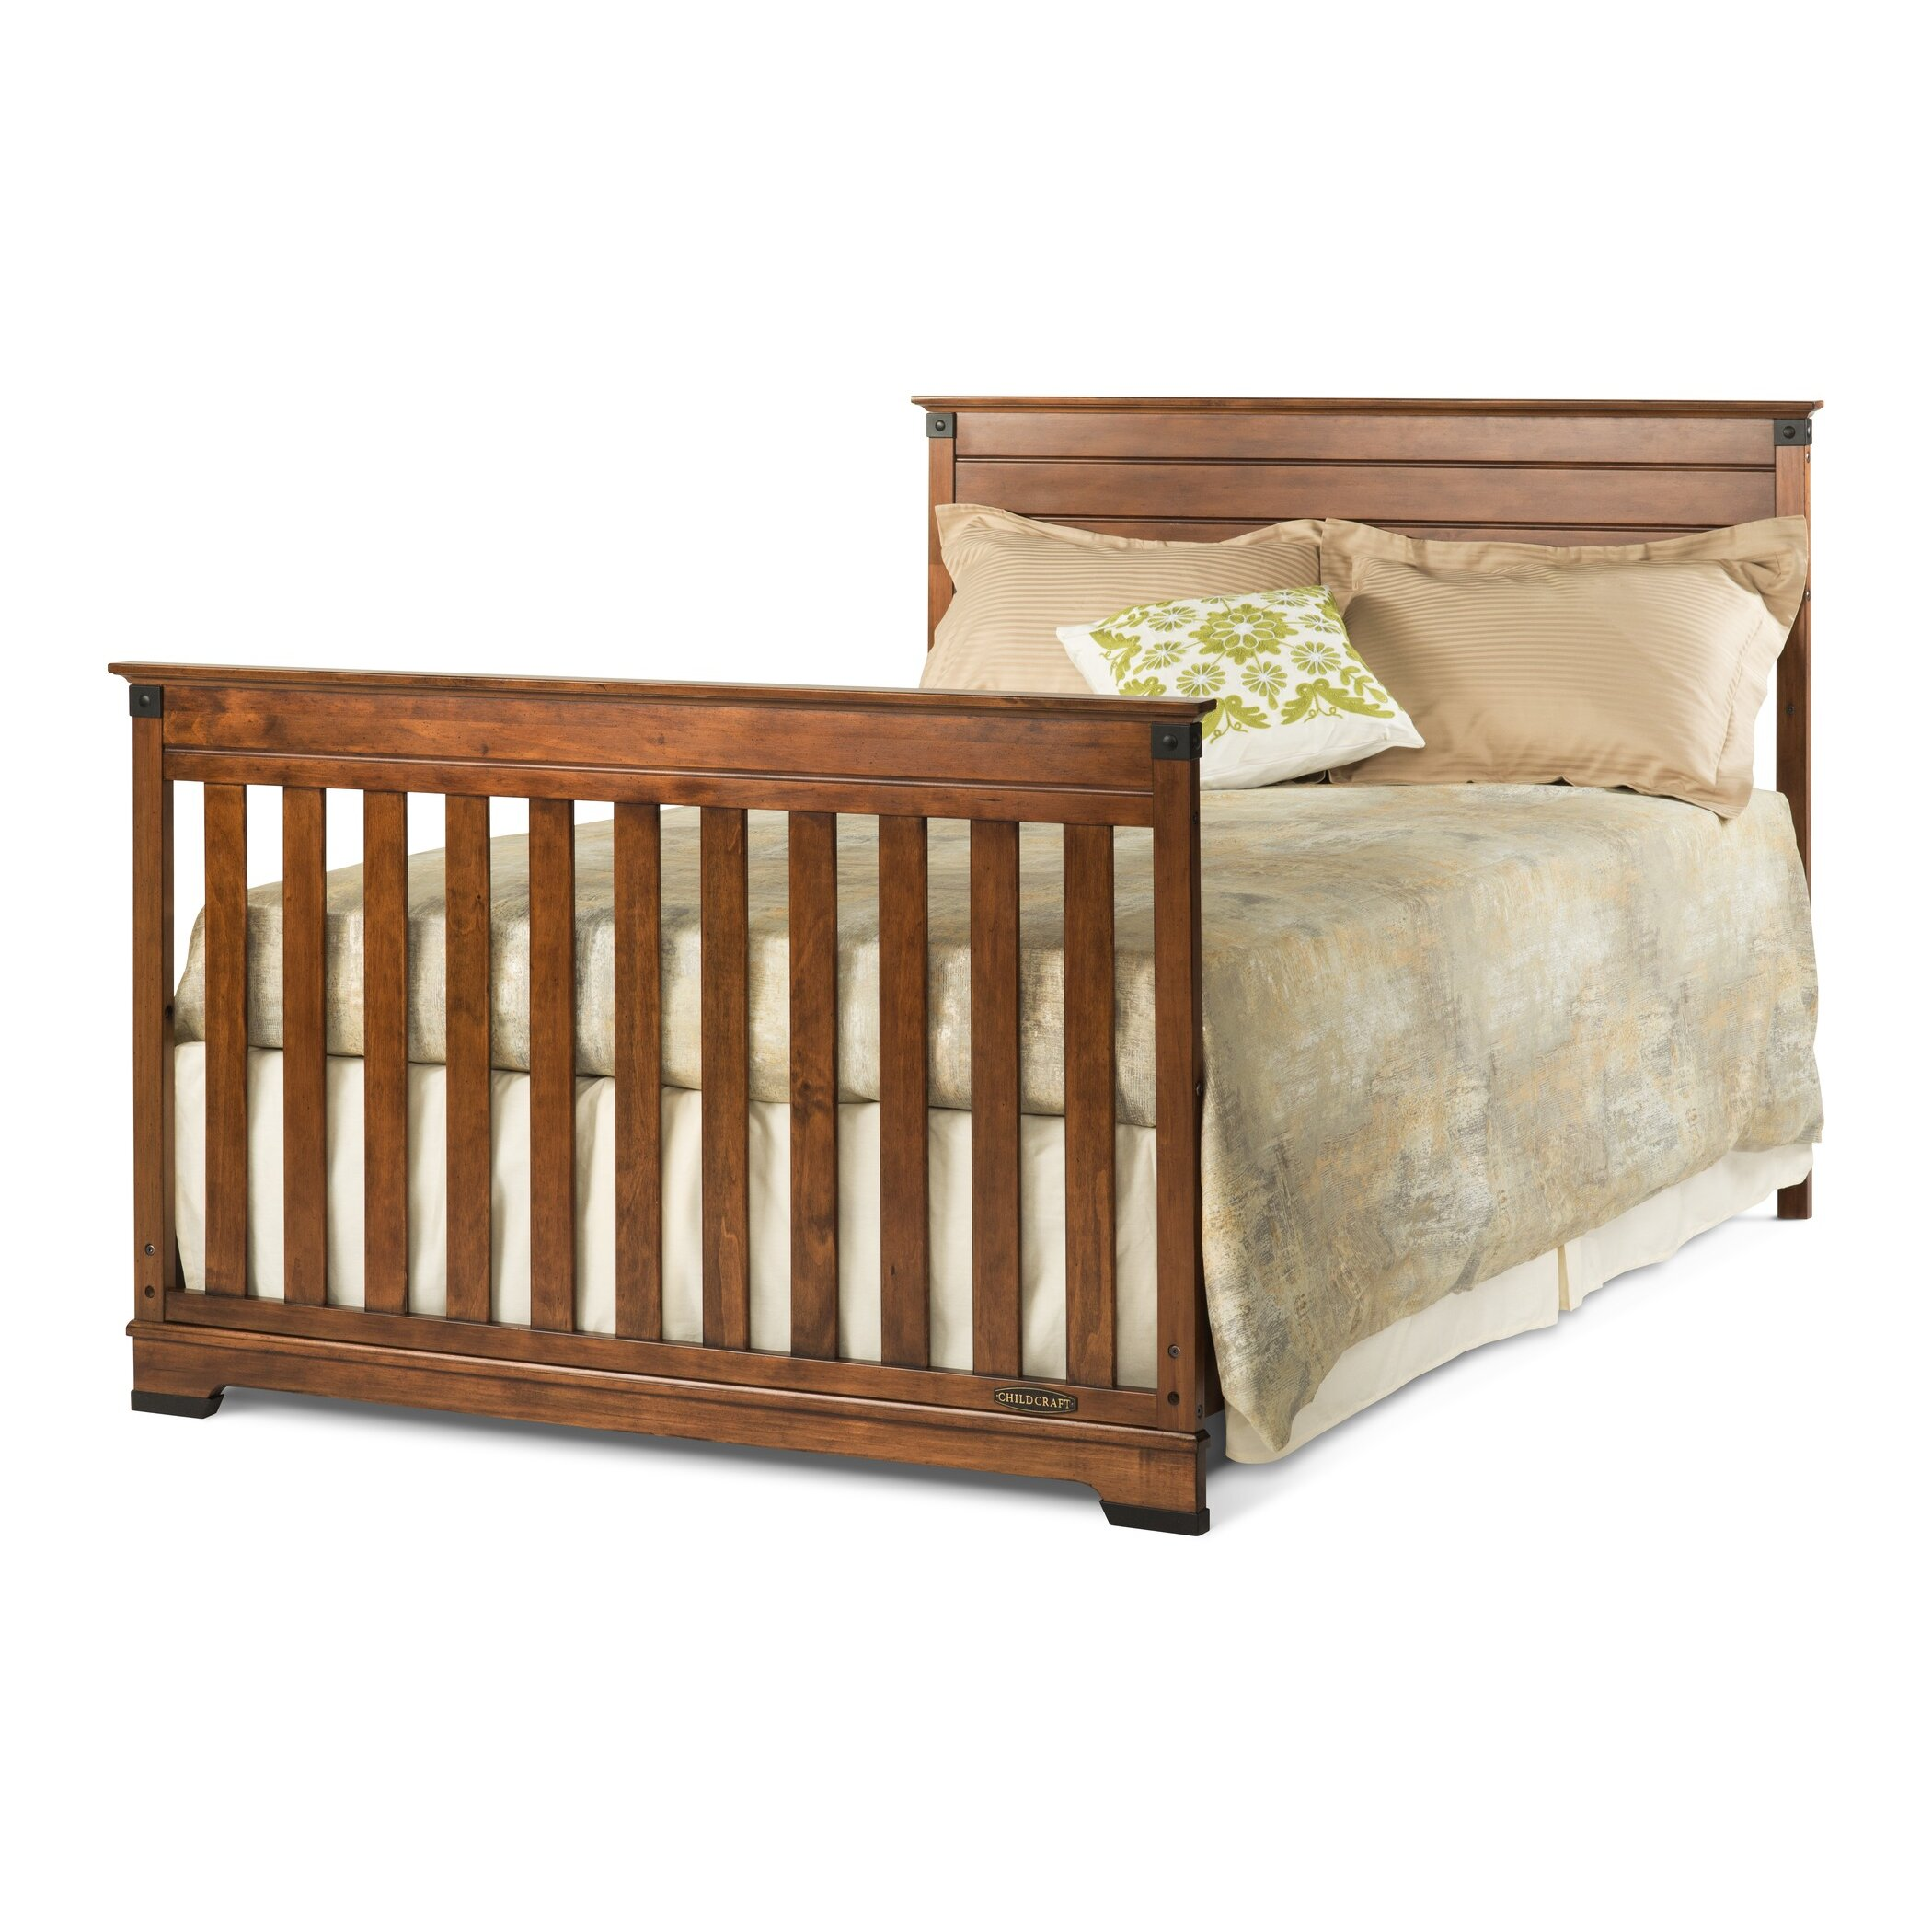 Child craft redmond convertible crib reviews wayfair for Child craft crib reviews